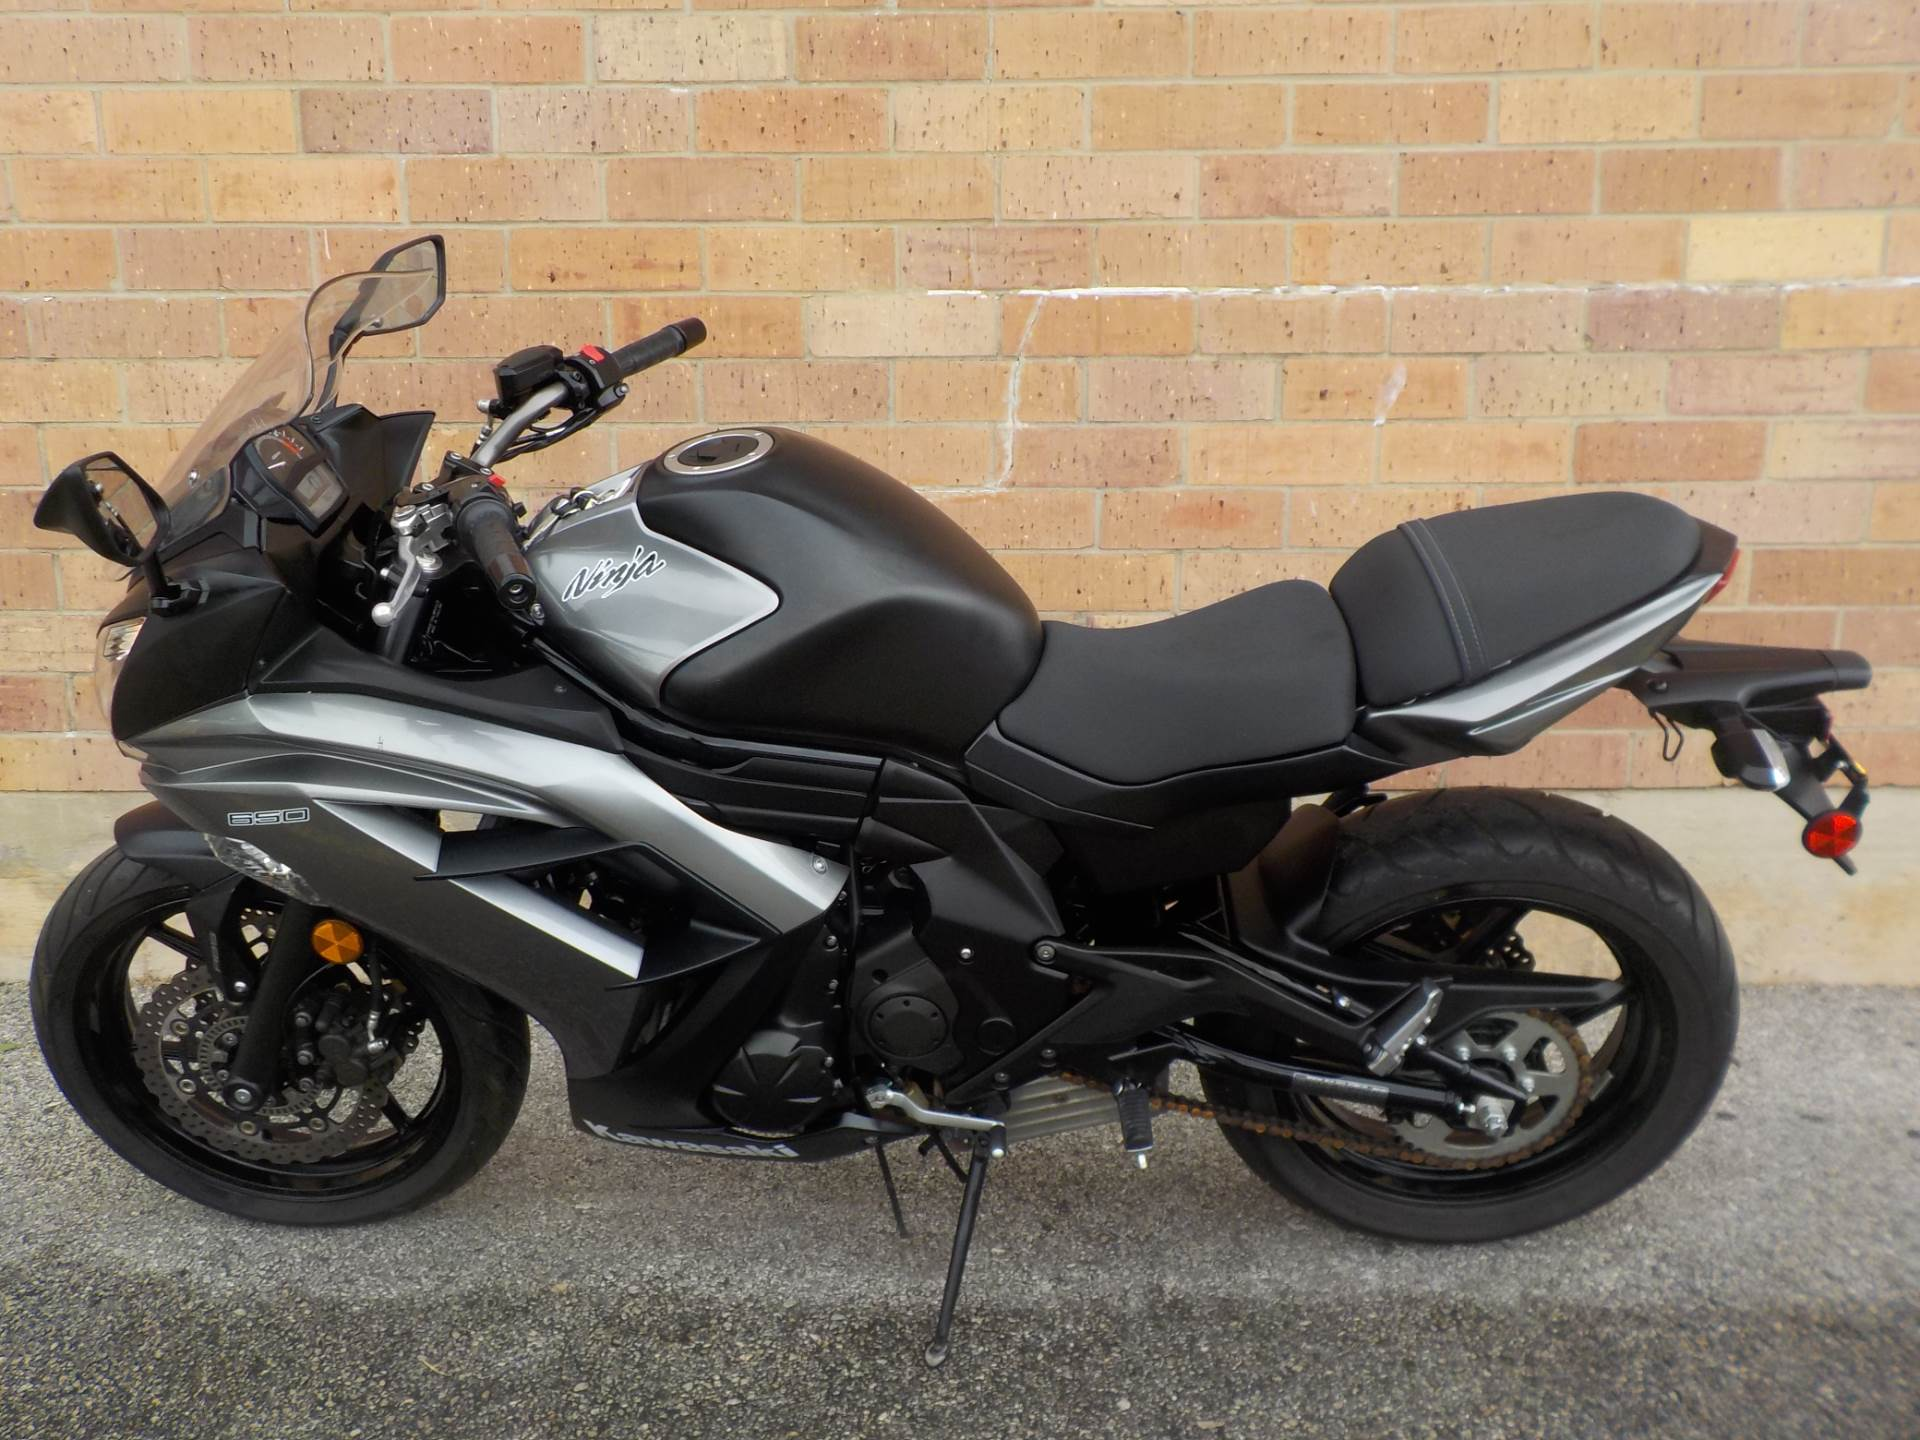 2014 Kawasaki Ninja® 650 in San Antonio, Texas